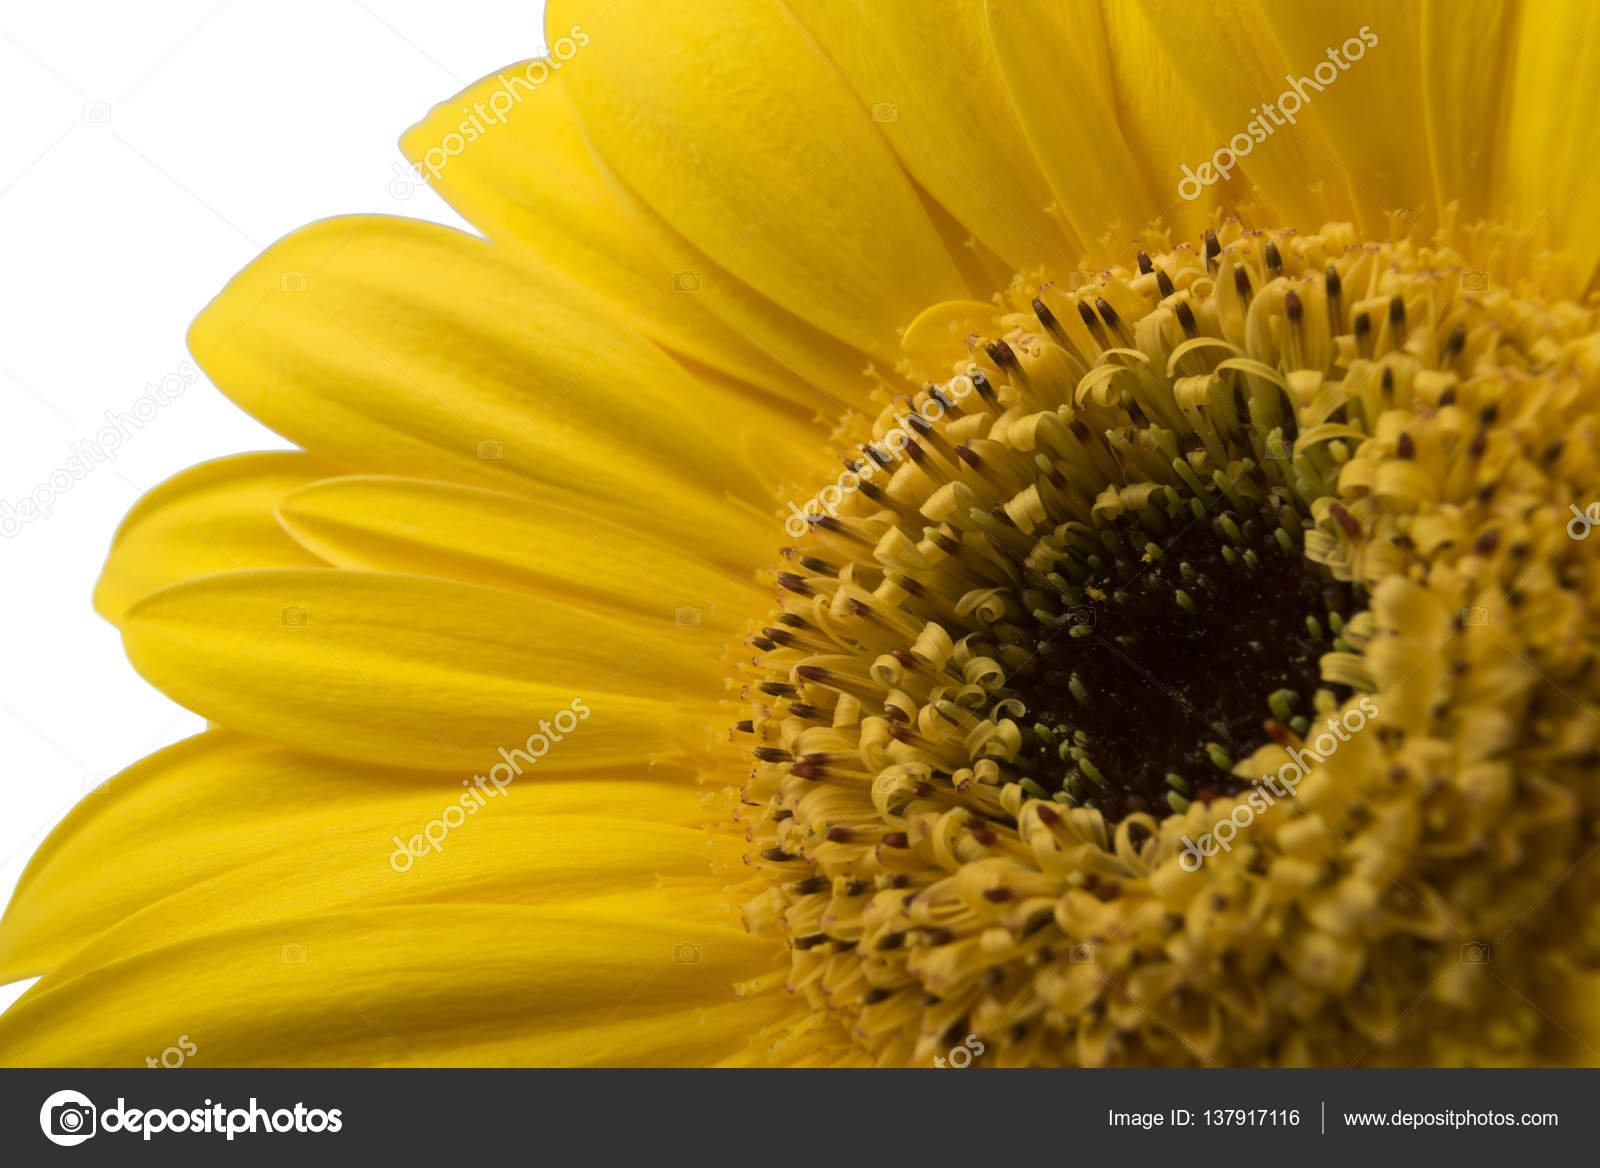 Vibrant bright yellow gerbera daisy flower blooming isolate on white vibrant bright yellow gerbera daisy flower blooming isolate on white background stock photo izmirmasajfo